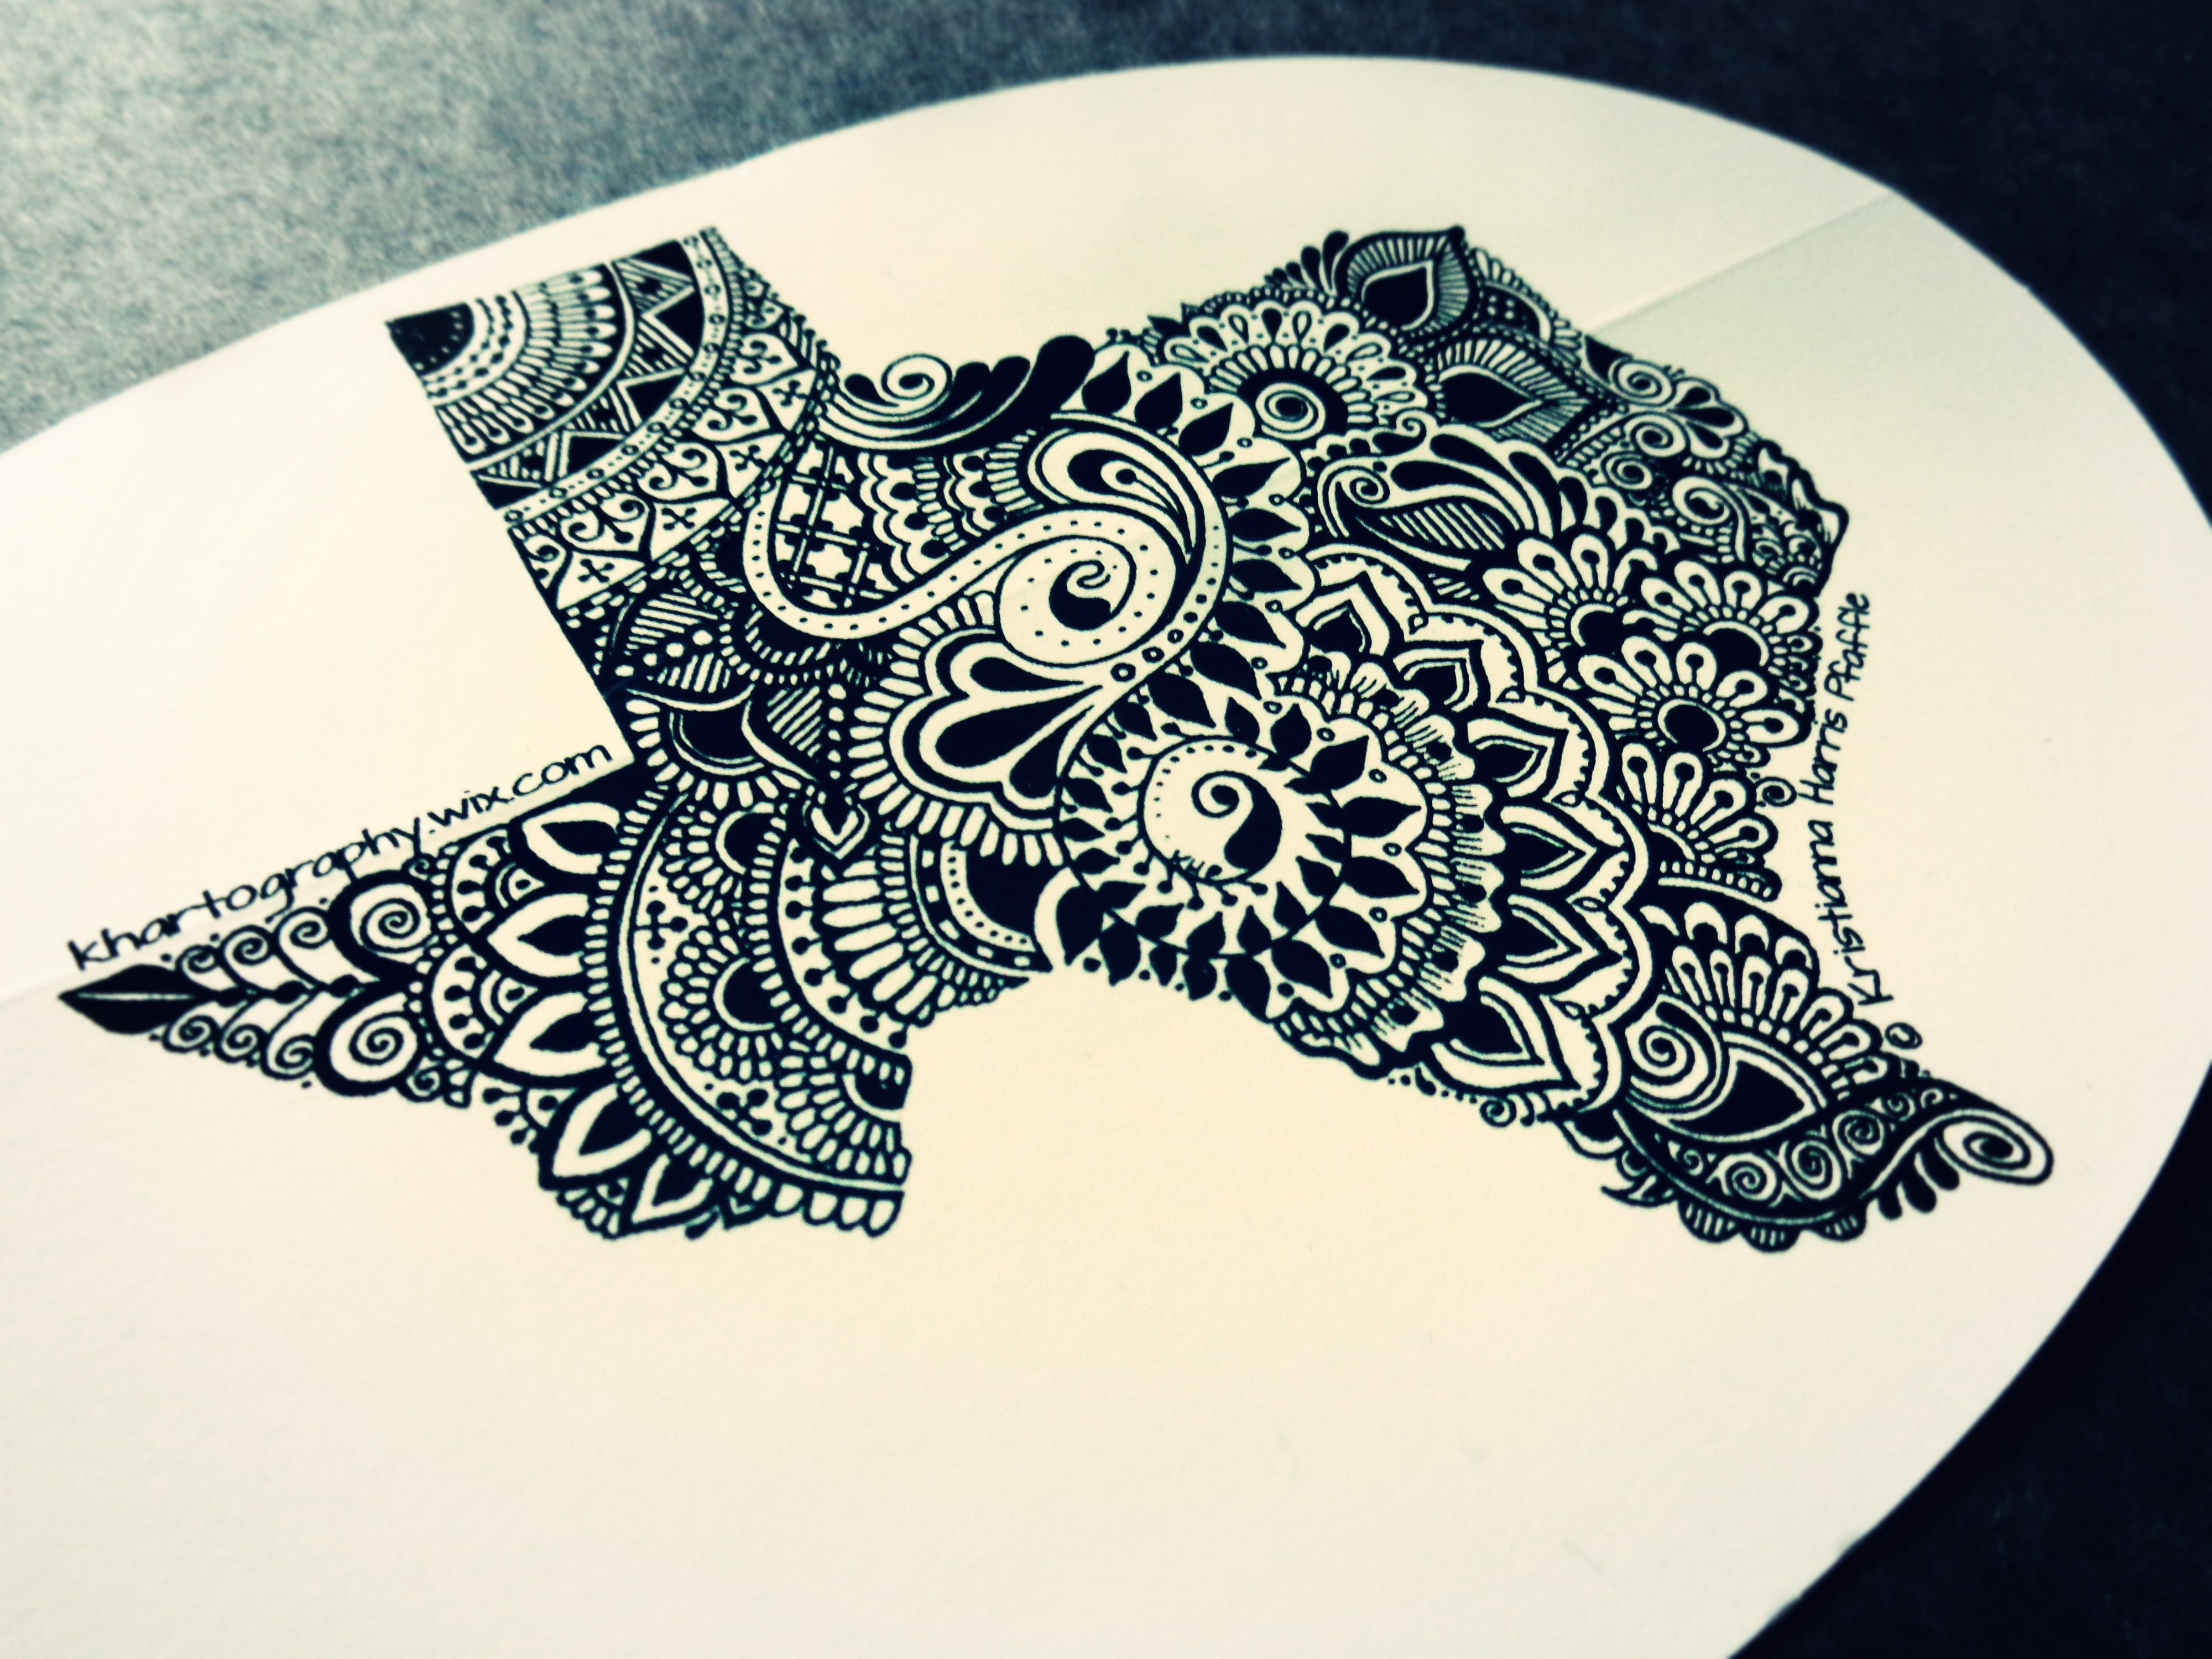 Watercolor tattoo artists in houston texas - Texas Decal Black On White